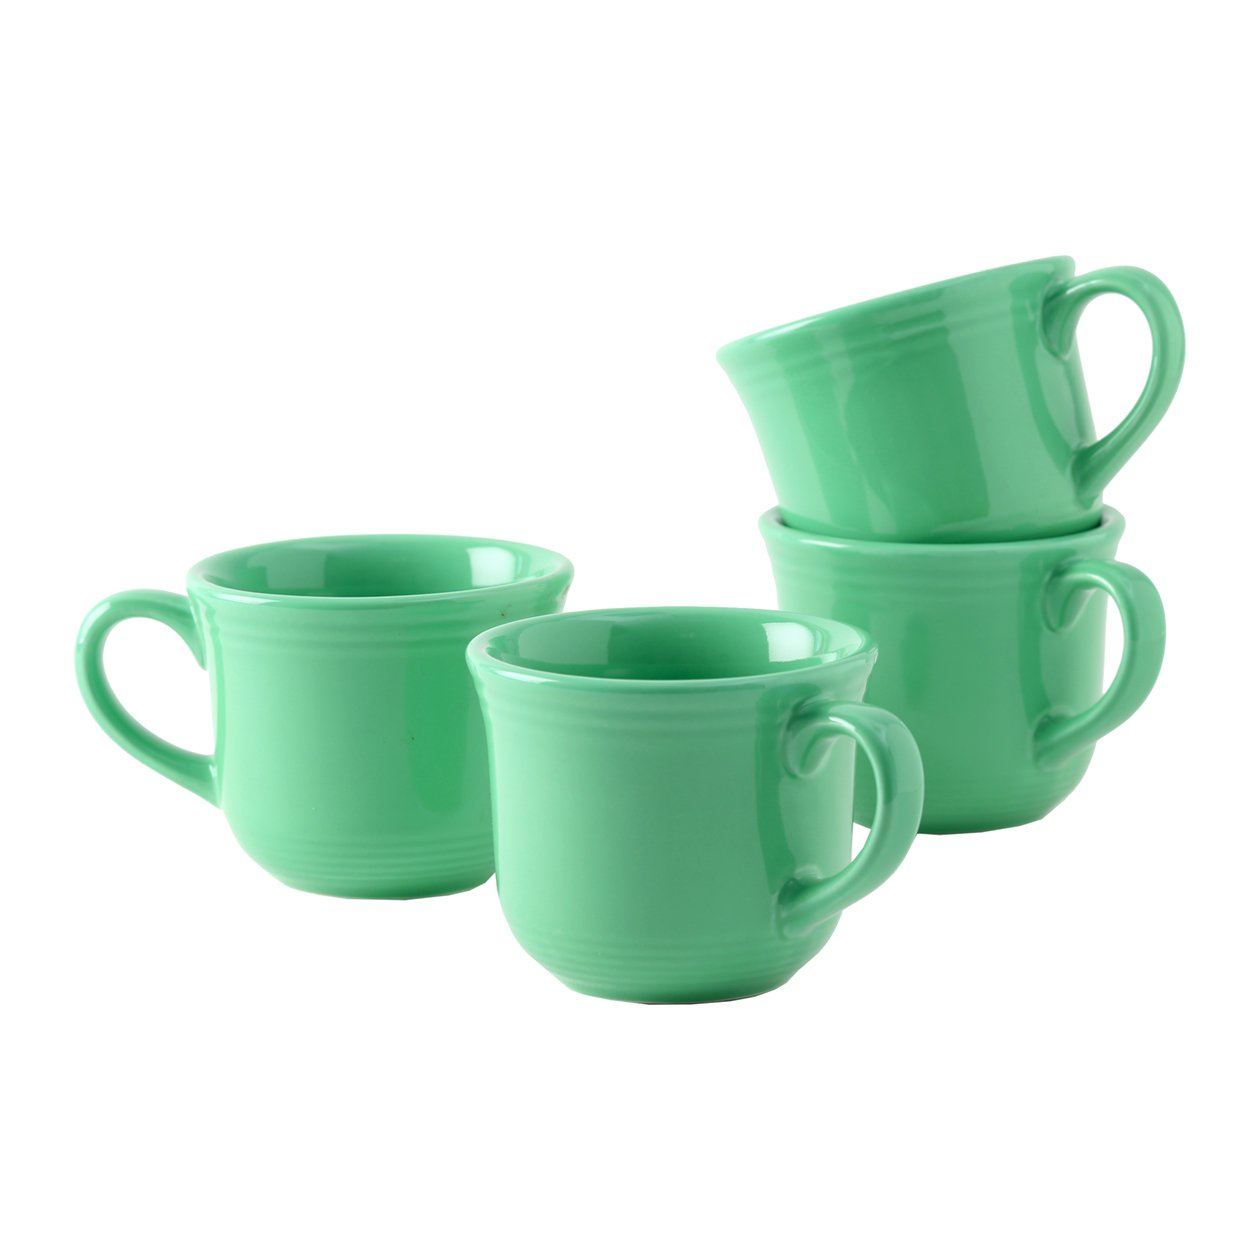 Tuxton Home Concentrix Round Cup (Set of 4), 8 oz, Cilantro Green; Heavy Duty; Chip Resistant; Lead and Cadmium Free; Freezer to Oven Safe up to 500F